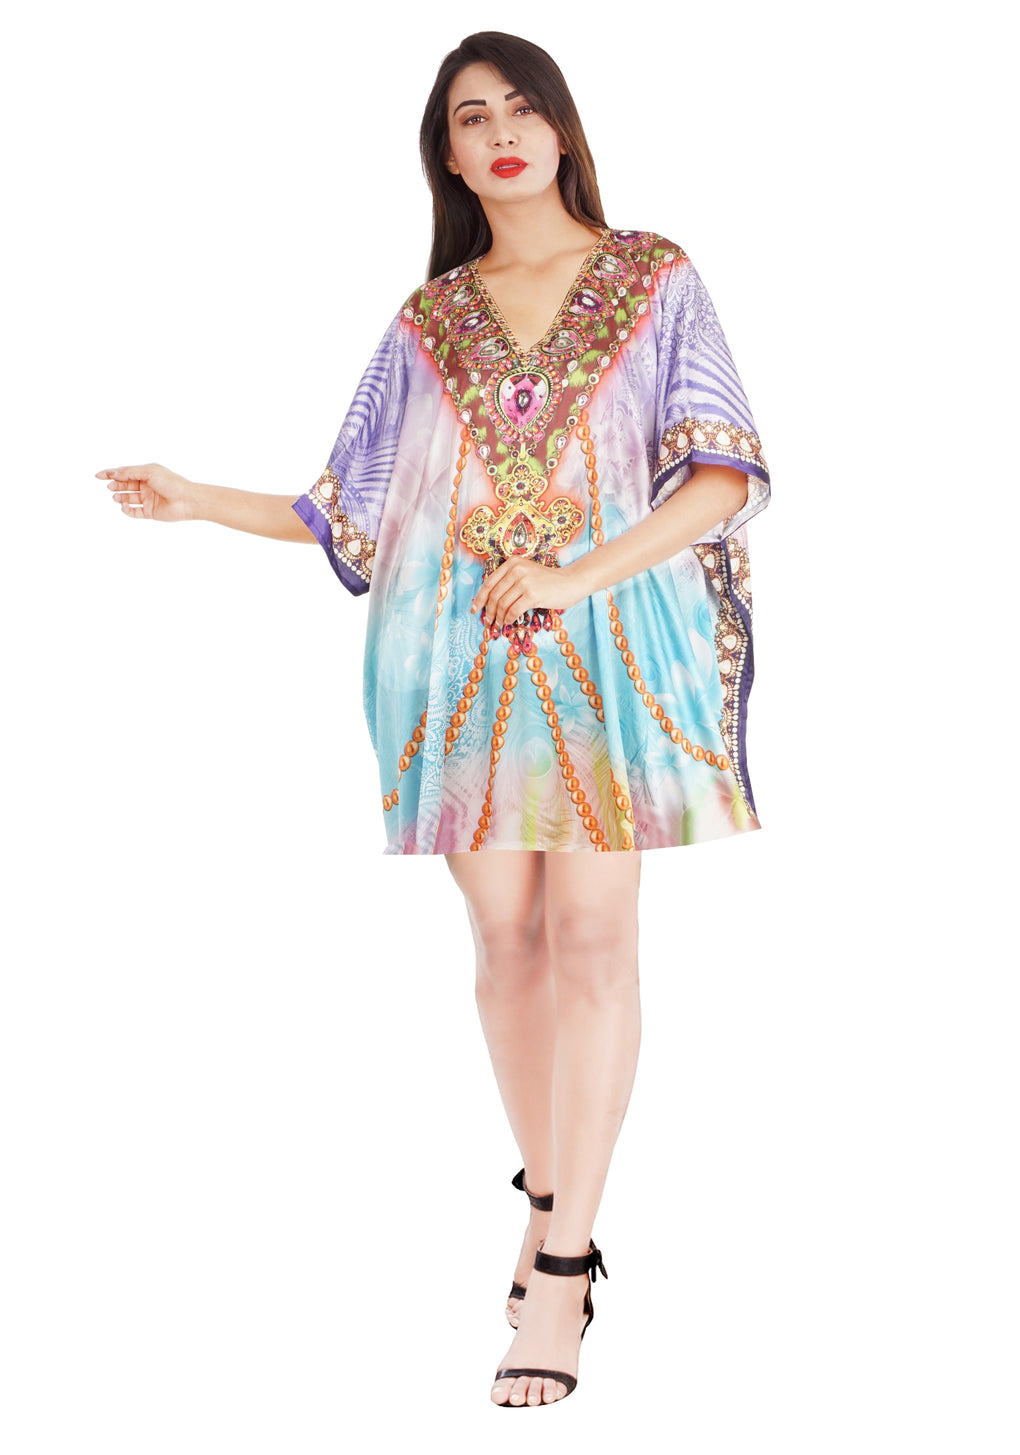 Short kaftan Resort wear for women Swimwear kaftan Beach wear kaftan Kaftan for sale - Silk kaftan